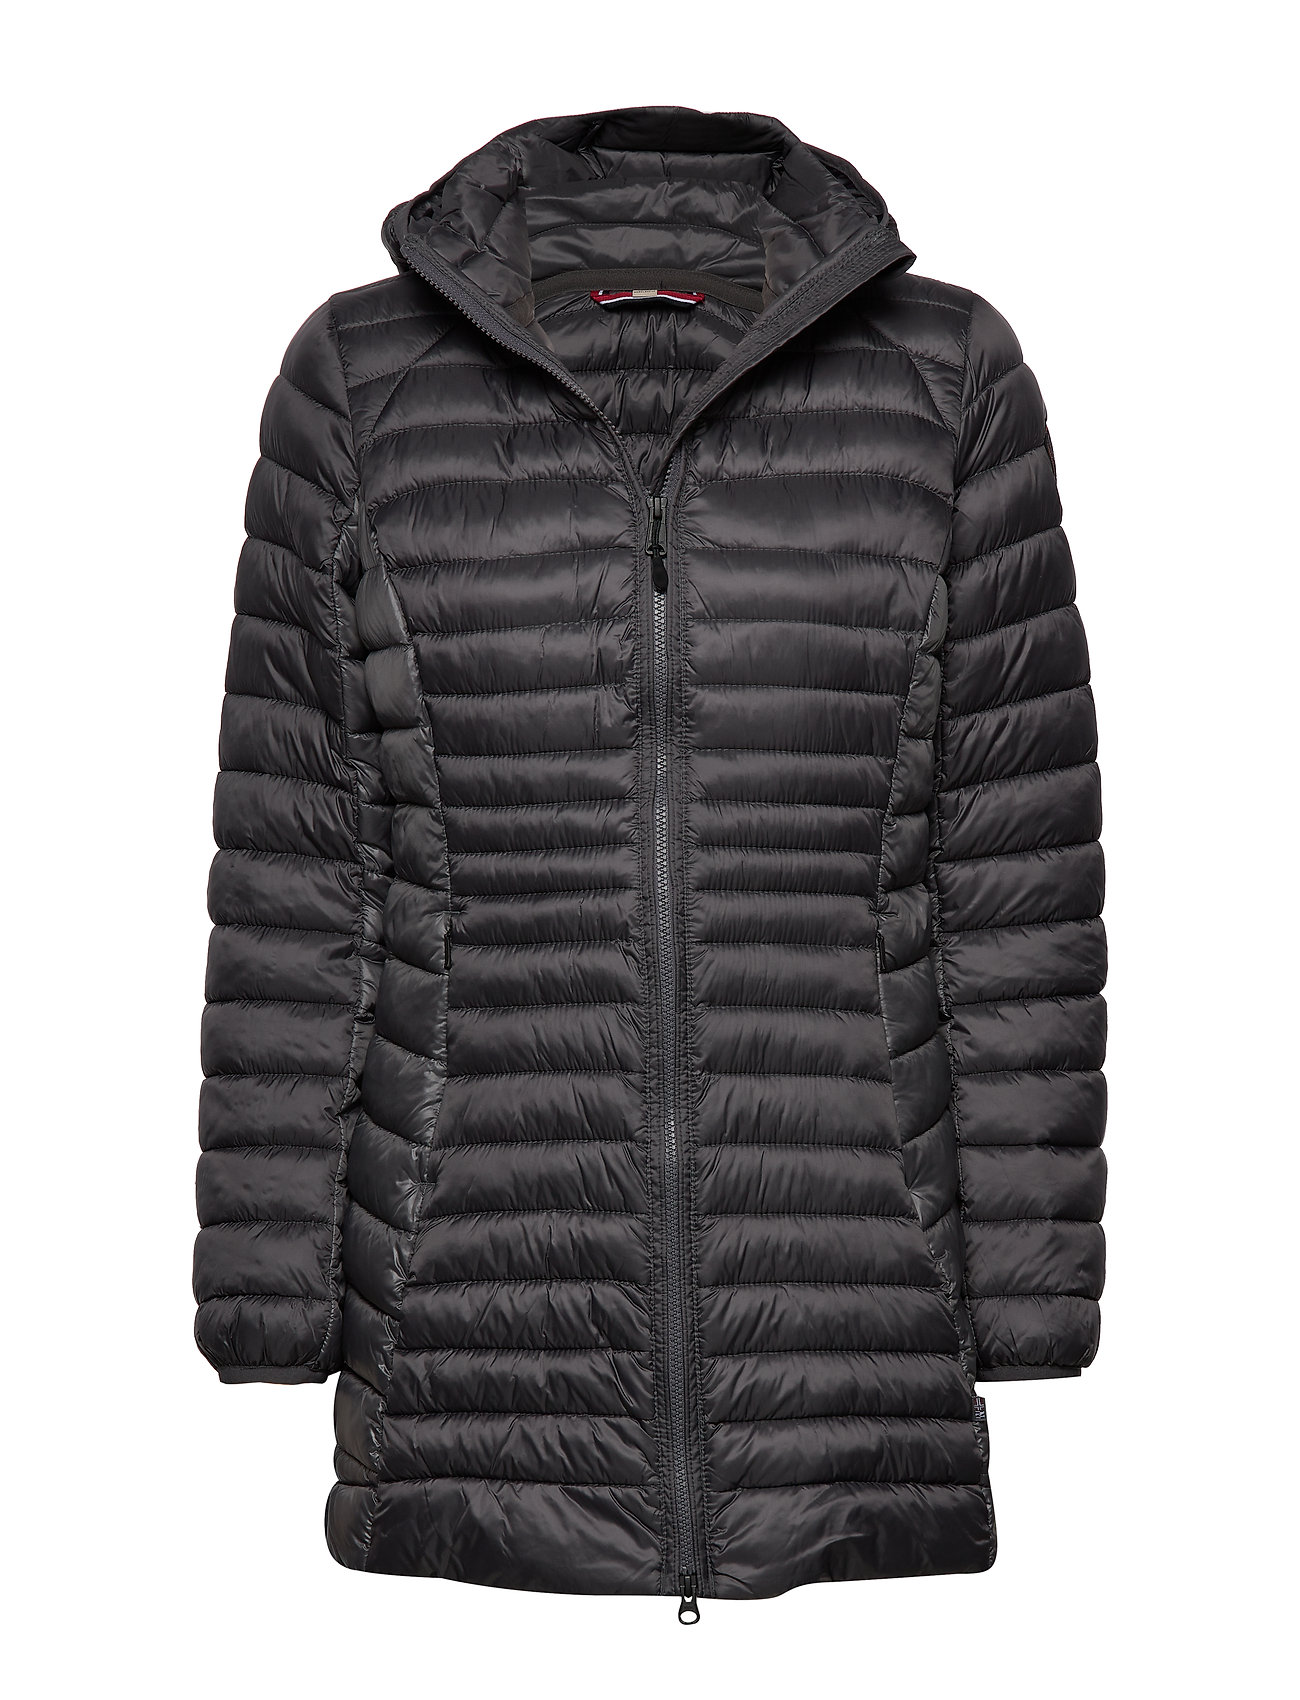 Napapijri AERONS WOM LONG 1 - DARK GREY SOLID